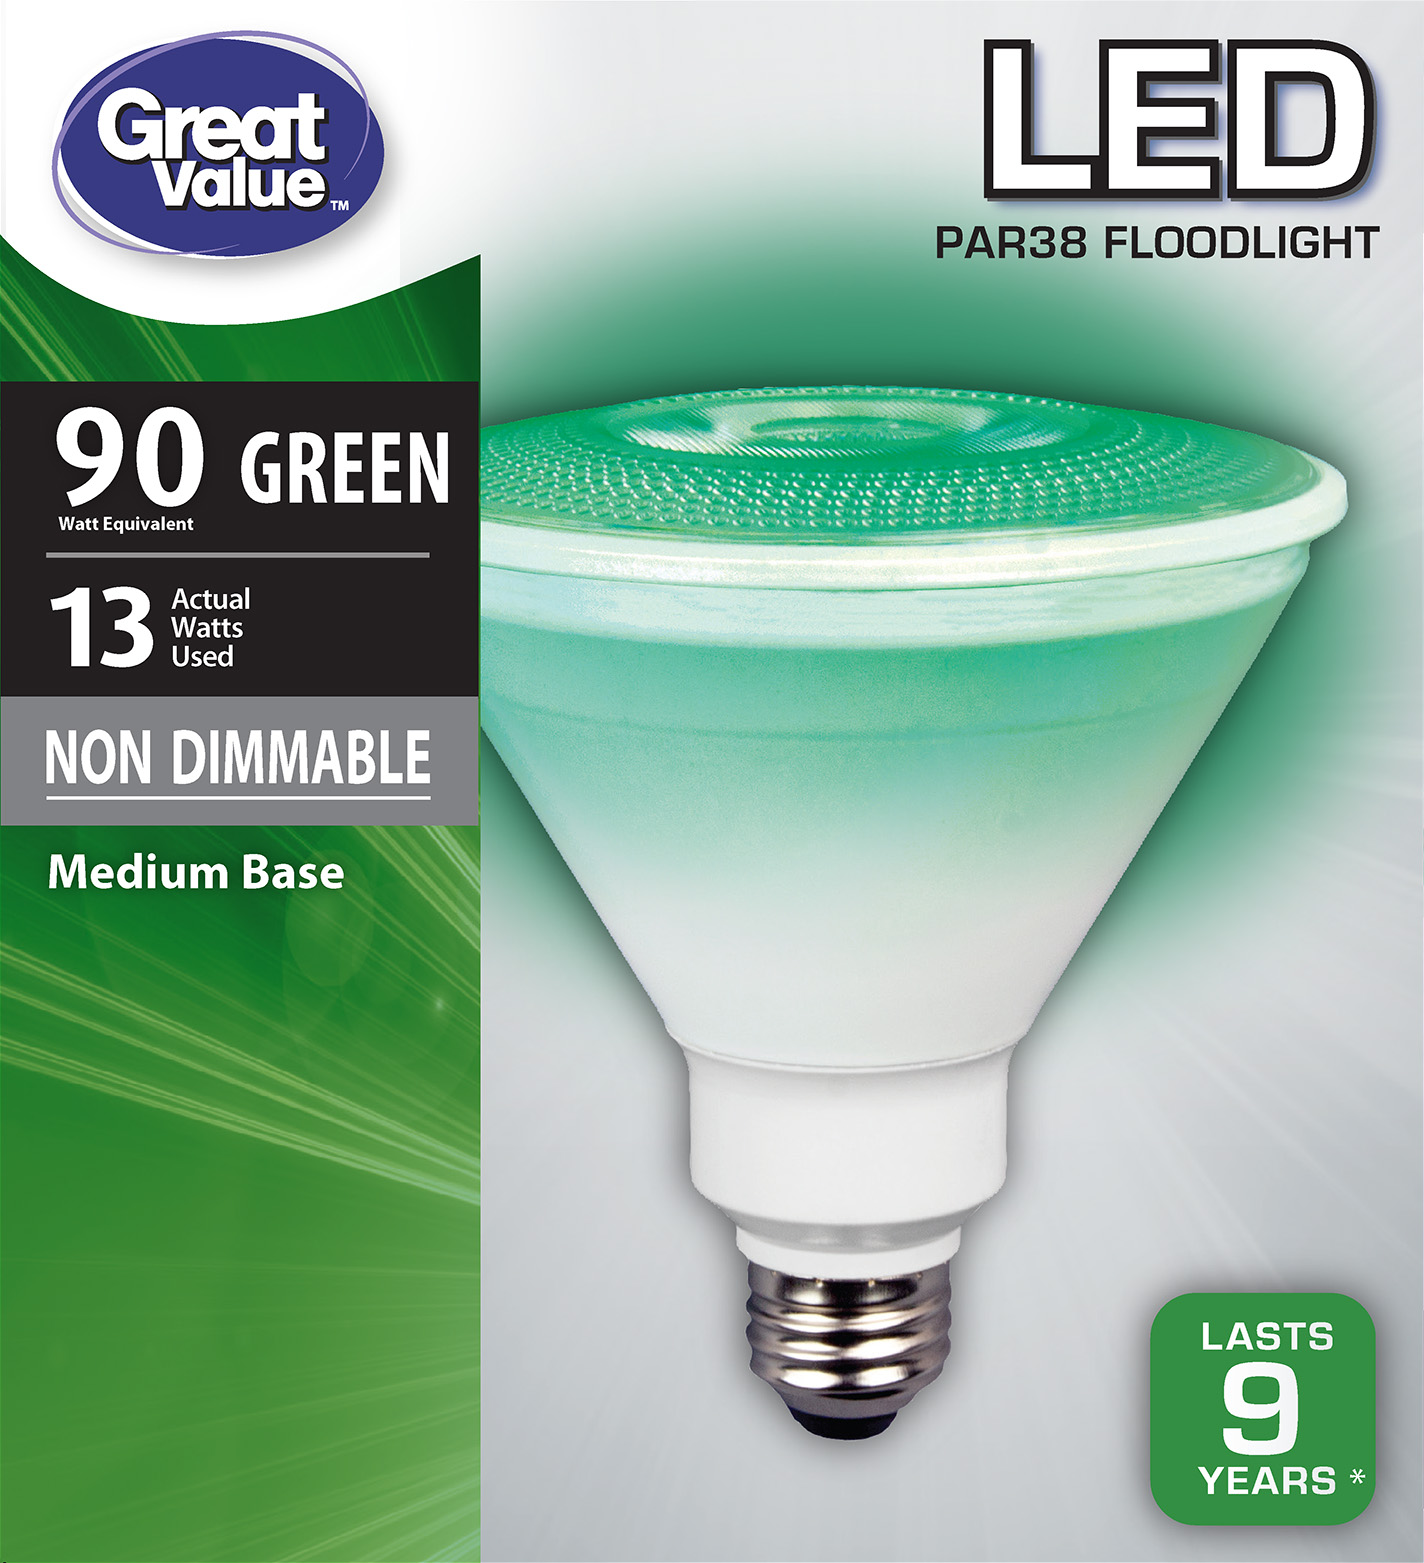 Great Value LED P38 Floodlight Light Bulb, 13W (90W Equivalent), Green